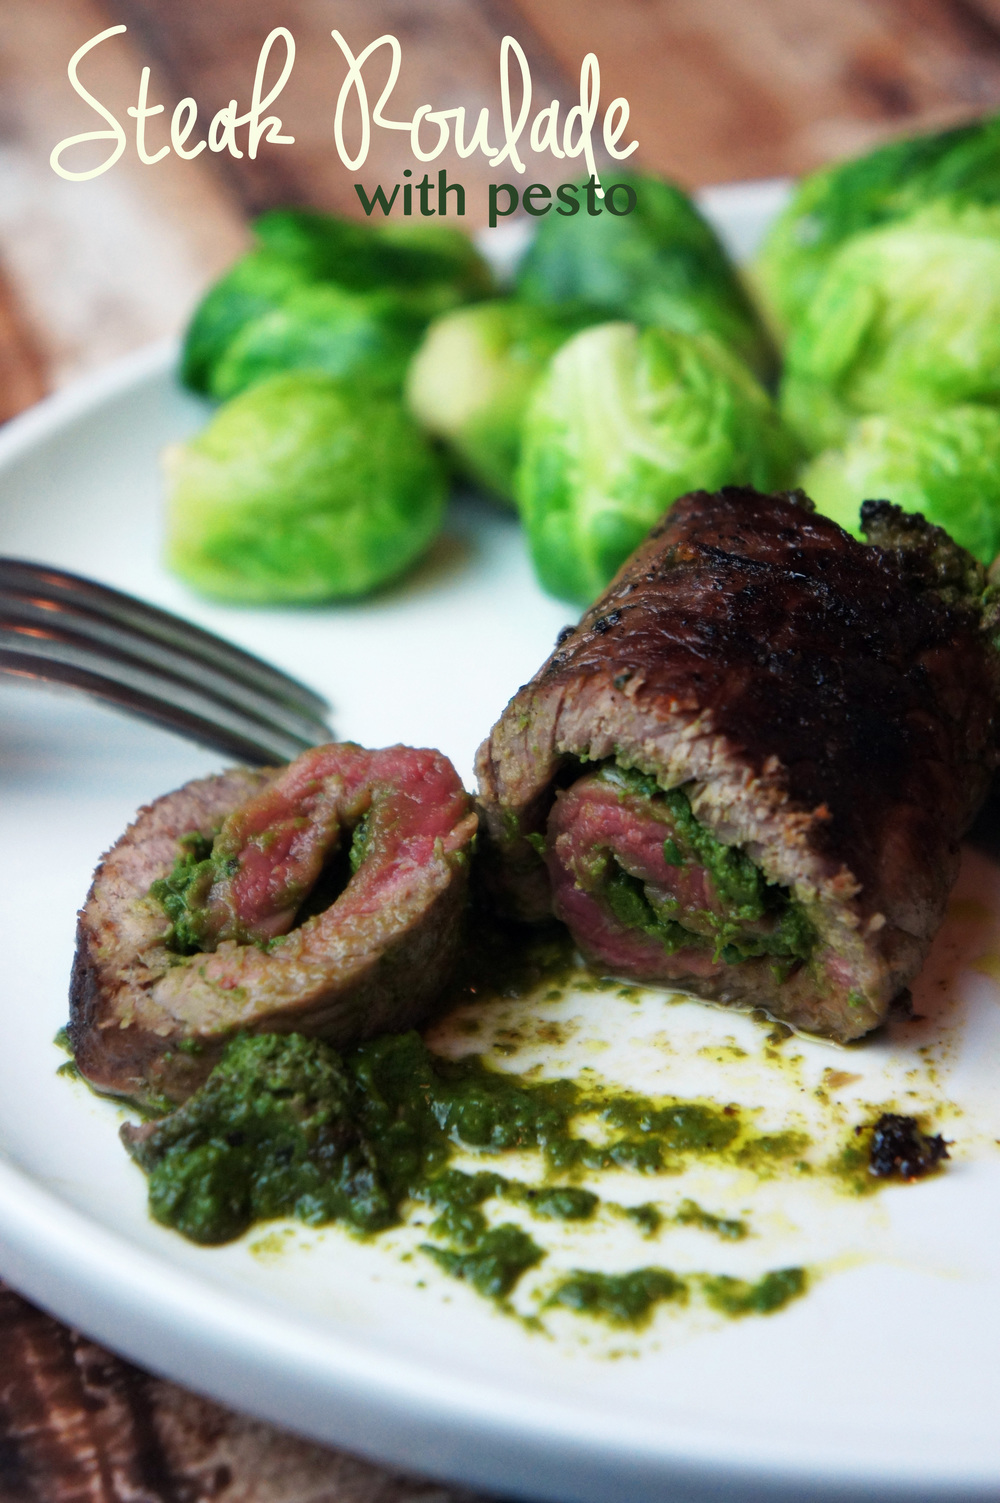 Individual Steak Roulades with pesto